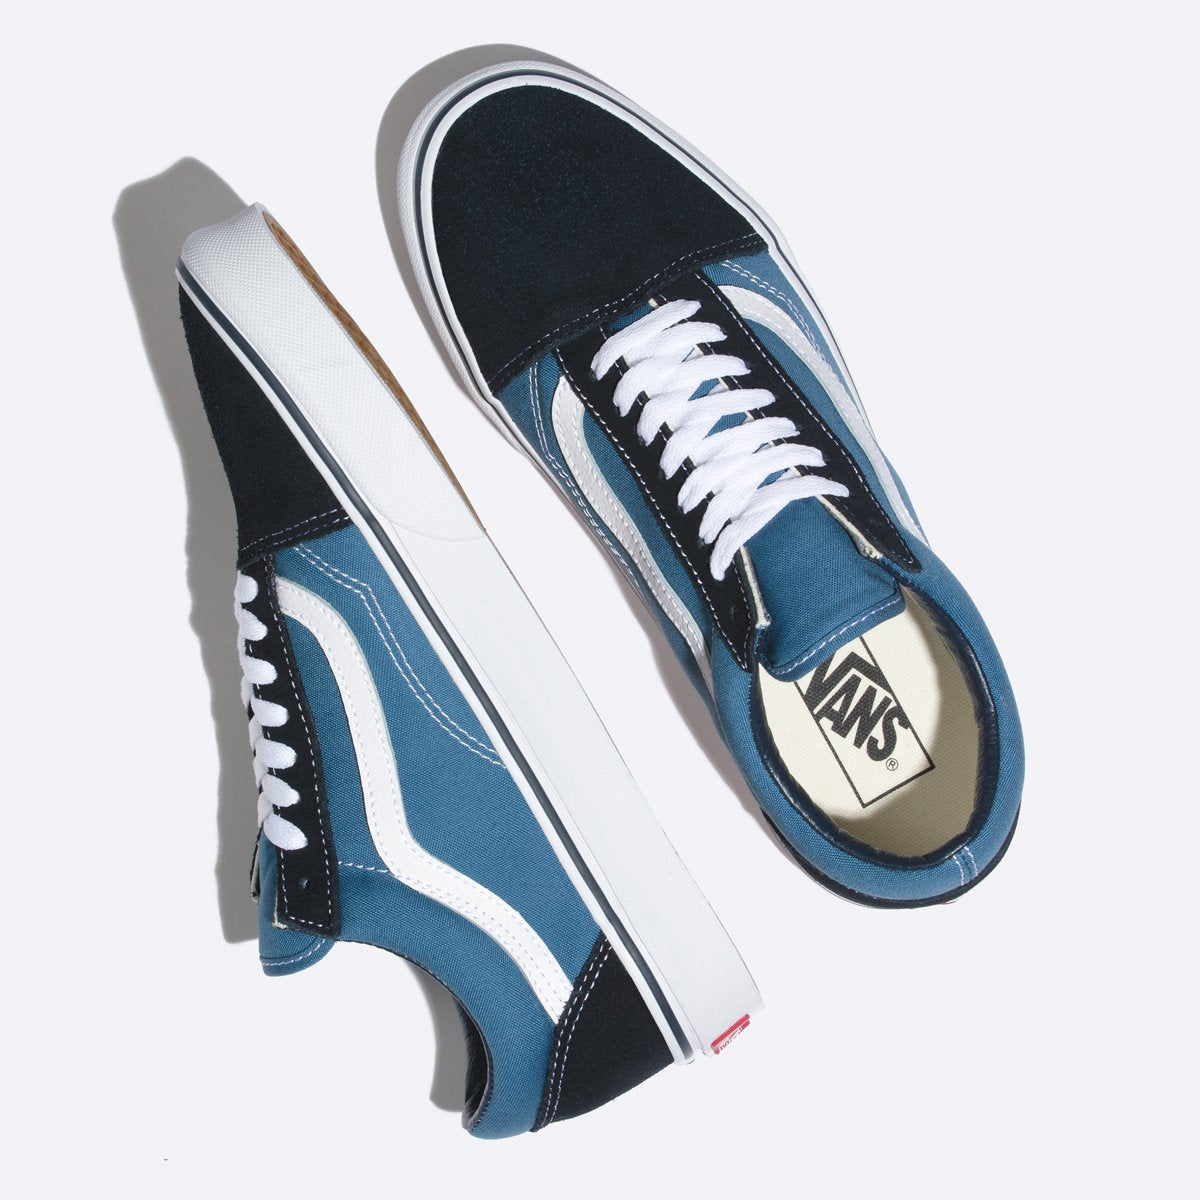 Zapatillas Vans Old Skool - Navy - Vans